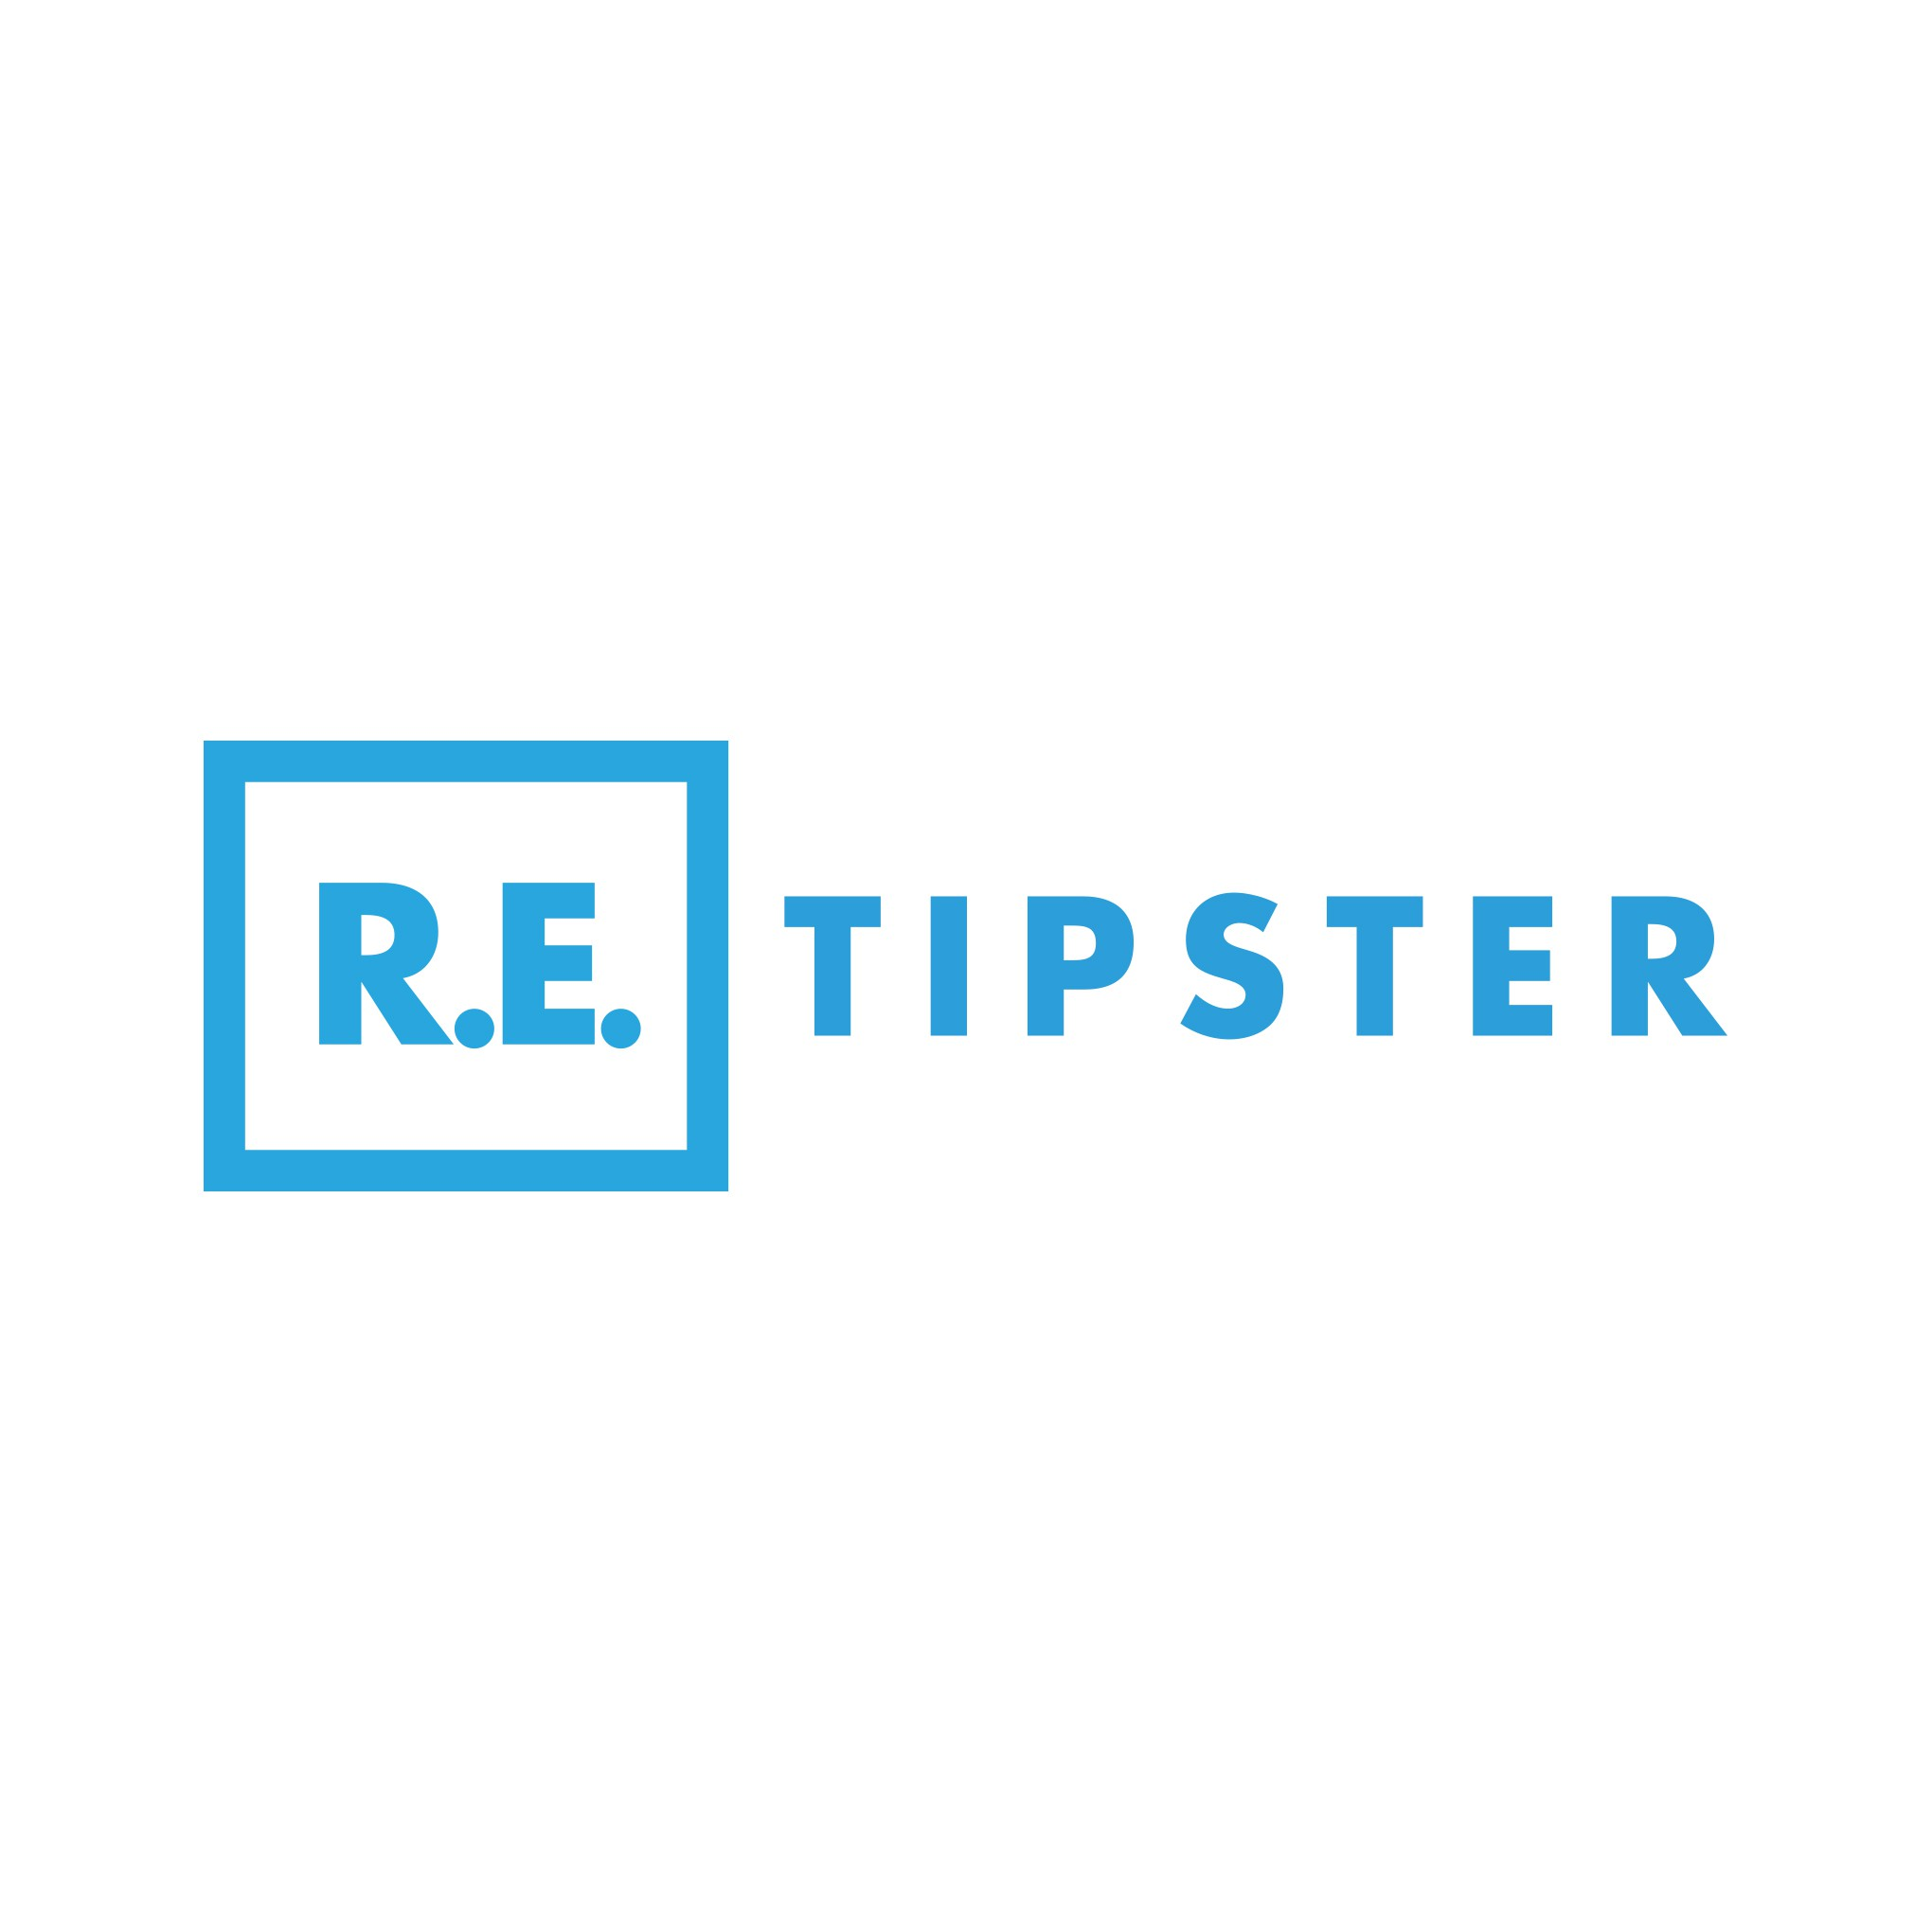 Re-design existing logo for well-known blog, to add clarity and a better visual brand identity.